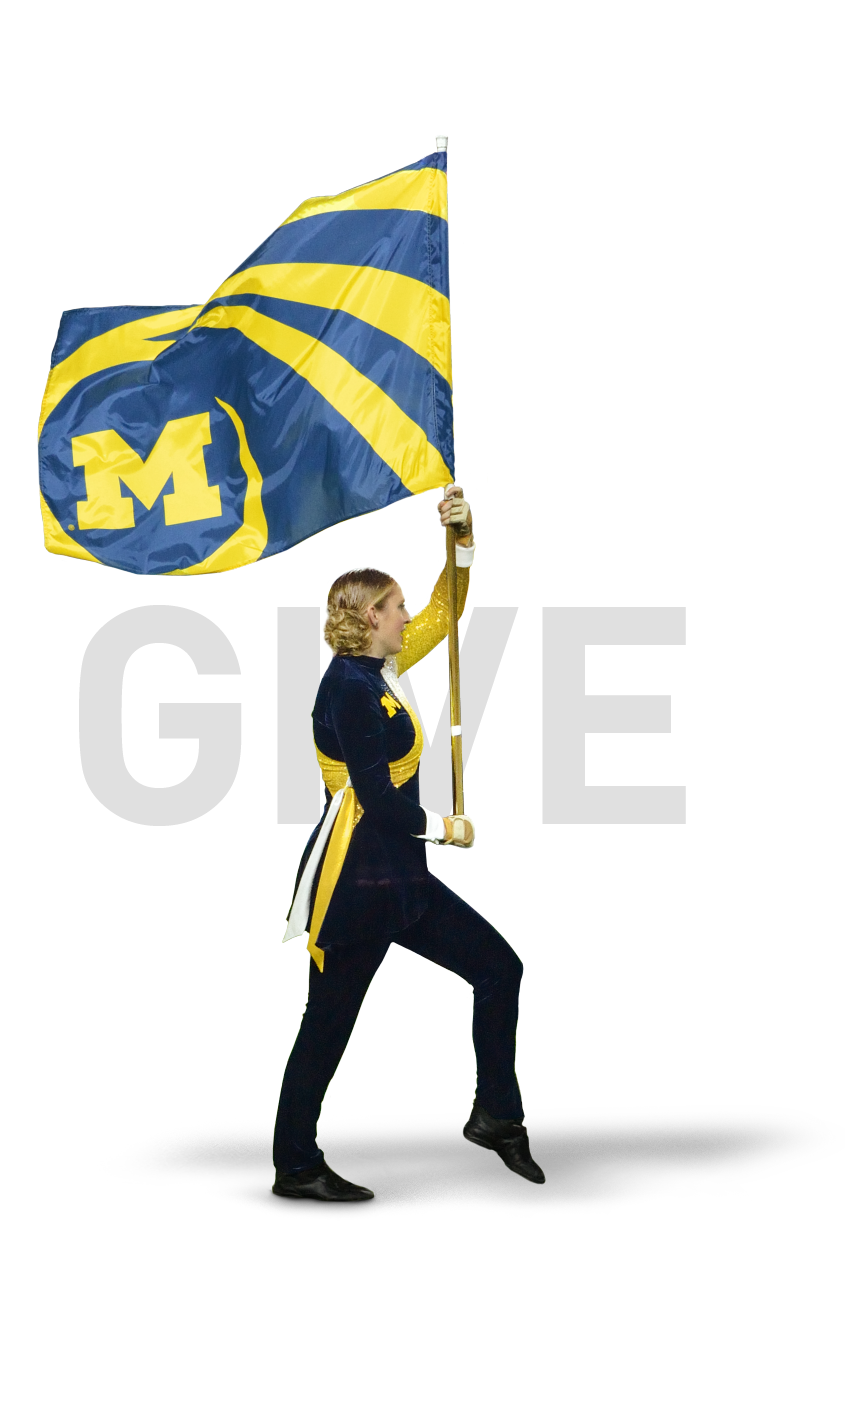 GIVE - The Elbel Club is dedicated to the ongoing improvement and strengthening of the Michigan Marching & Athletic Bands. Its members are friends, alumni and advocates of the University who recognize the value of the Marching Band experience and are essential to the program's success.